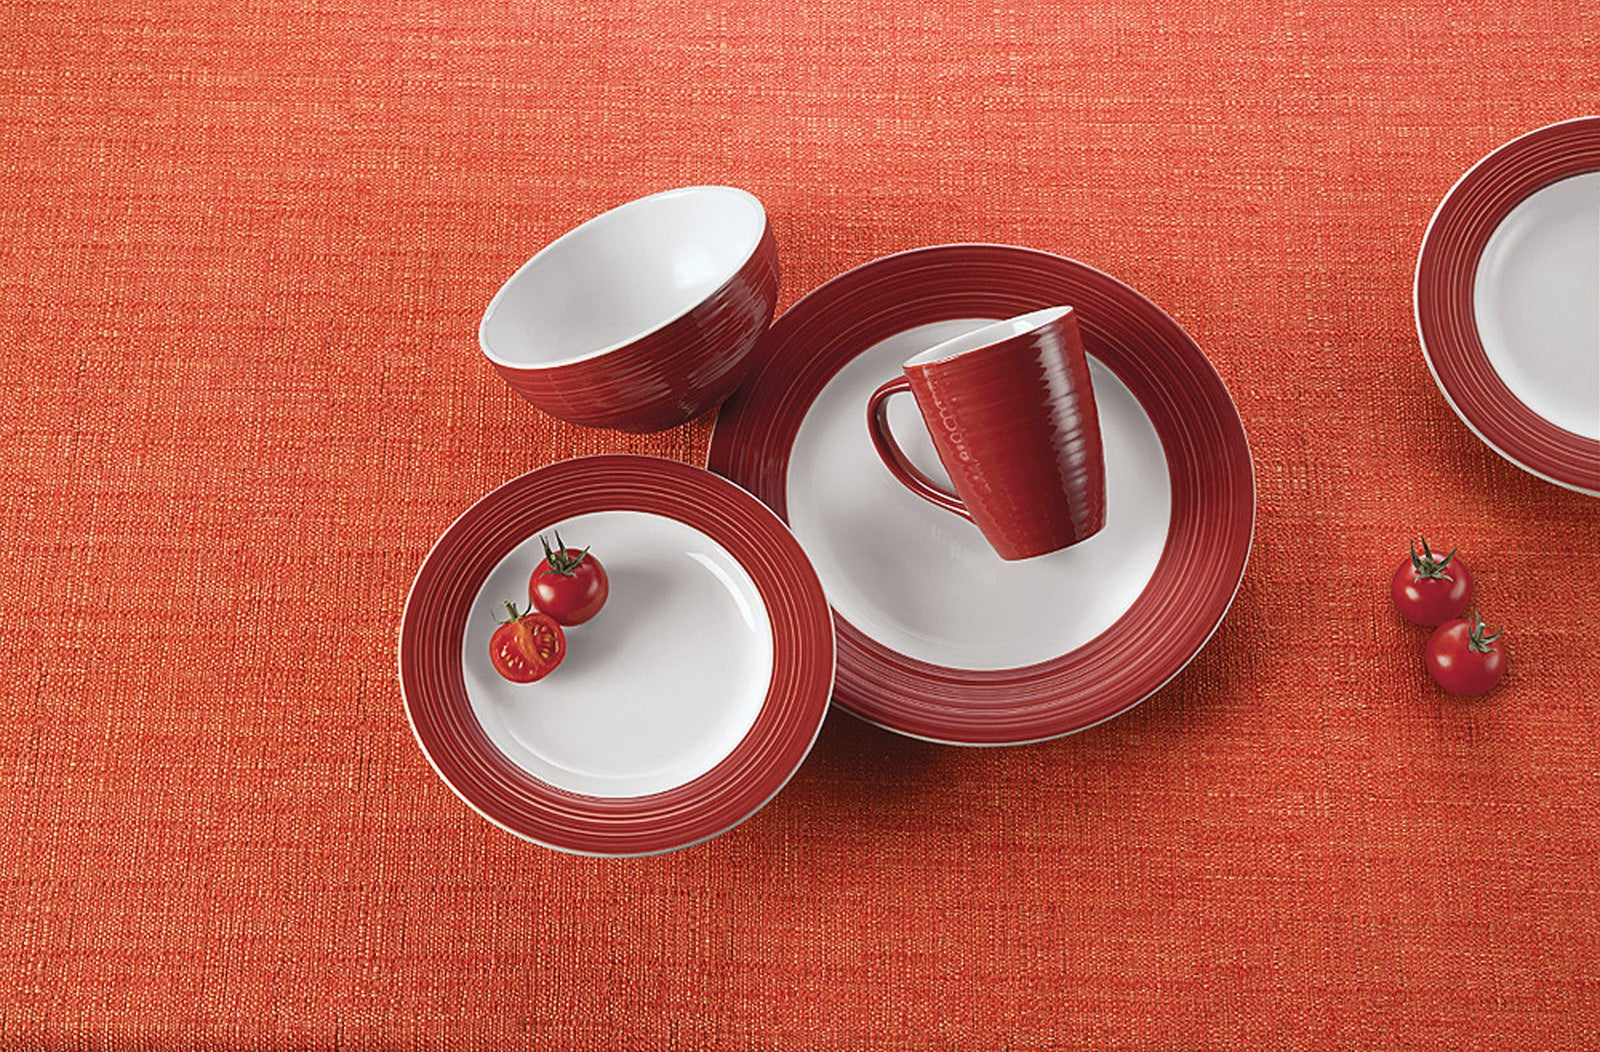 Set includes four dinner plates, four salad plates, four salad bowls, and four mugs.Price: $38.88 ($10.39 off the list price)